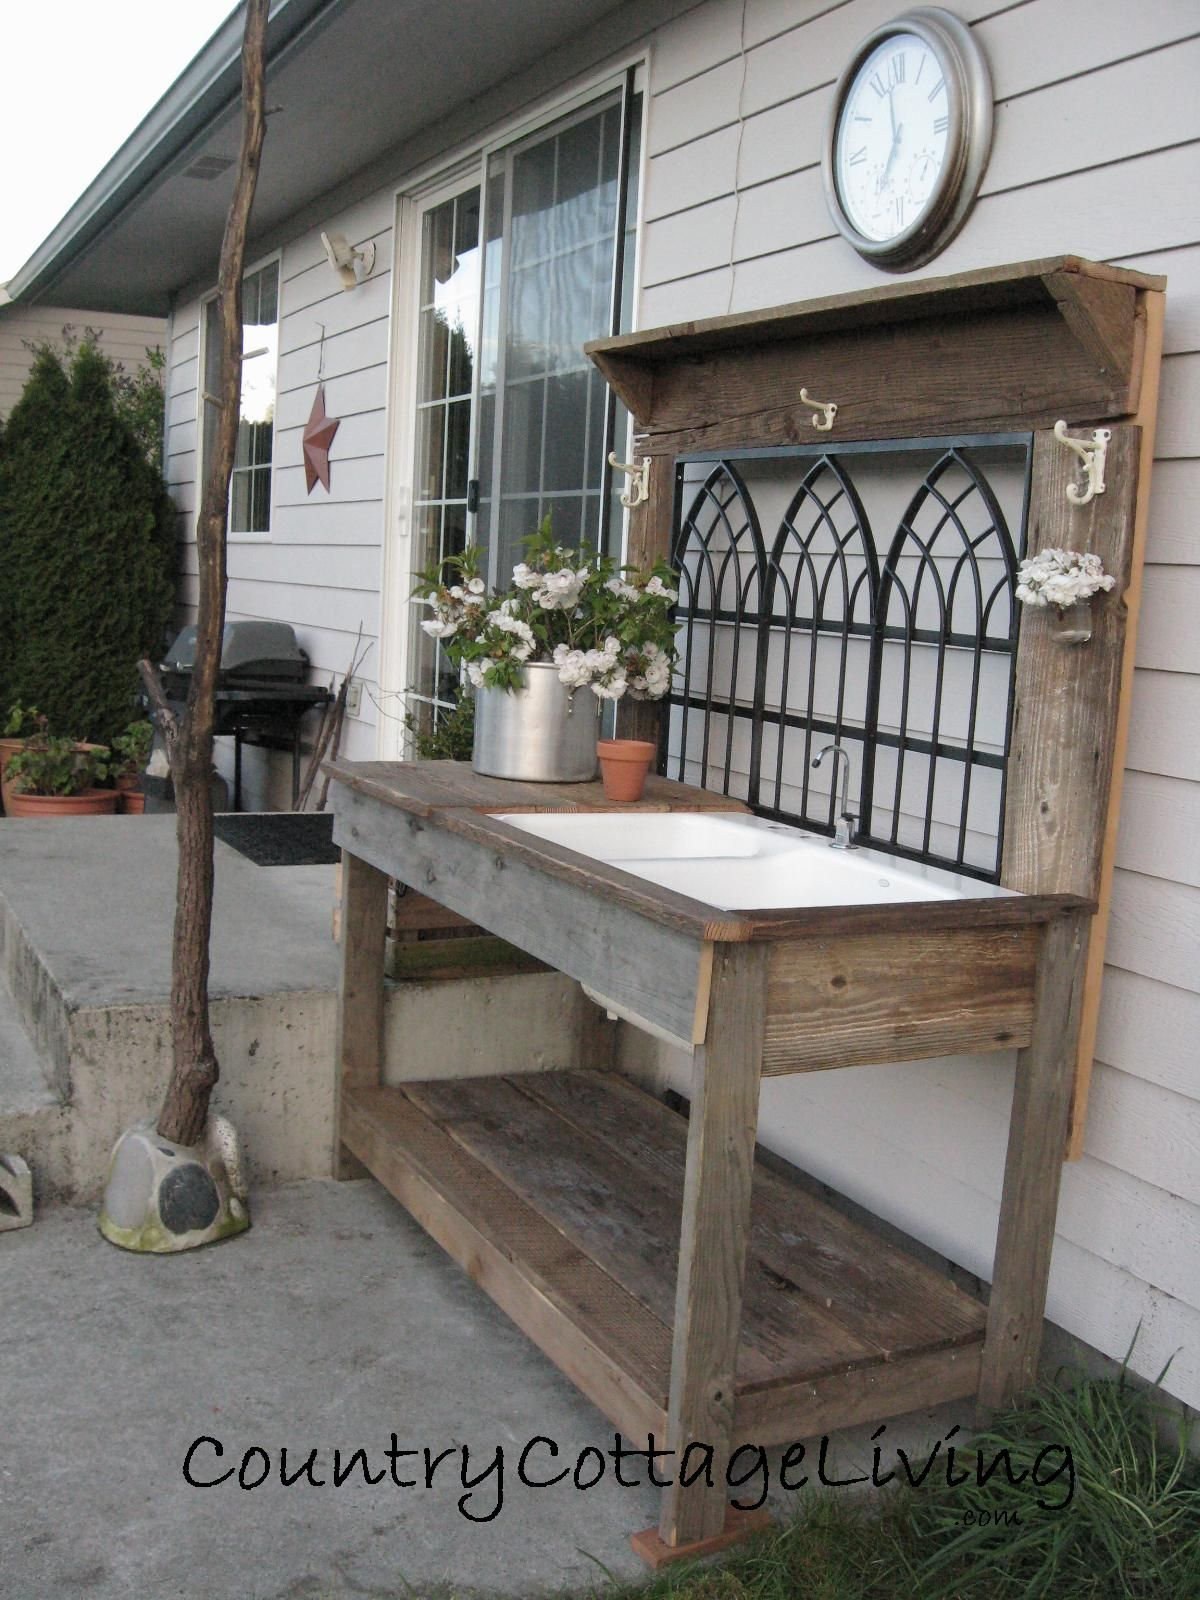 Garden And Potting Tables Potting Bench Plans Garden Potting Bench Plans Garden Potting Pallet Potting Bench Potting Bench Plans Outdoor Sinks